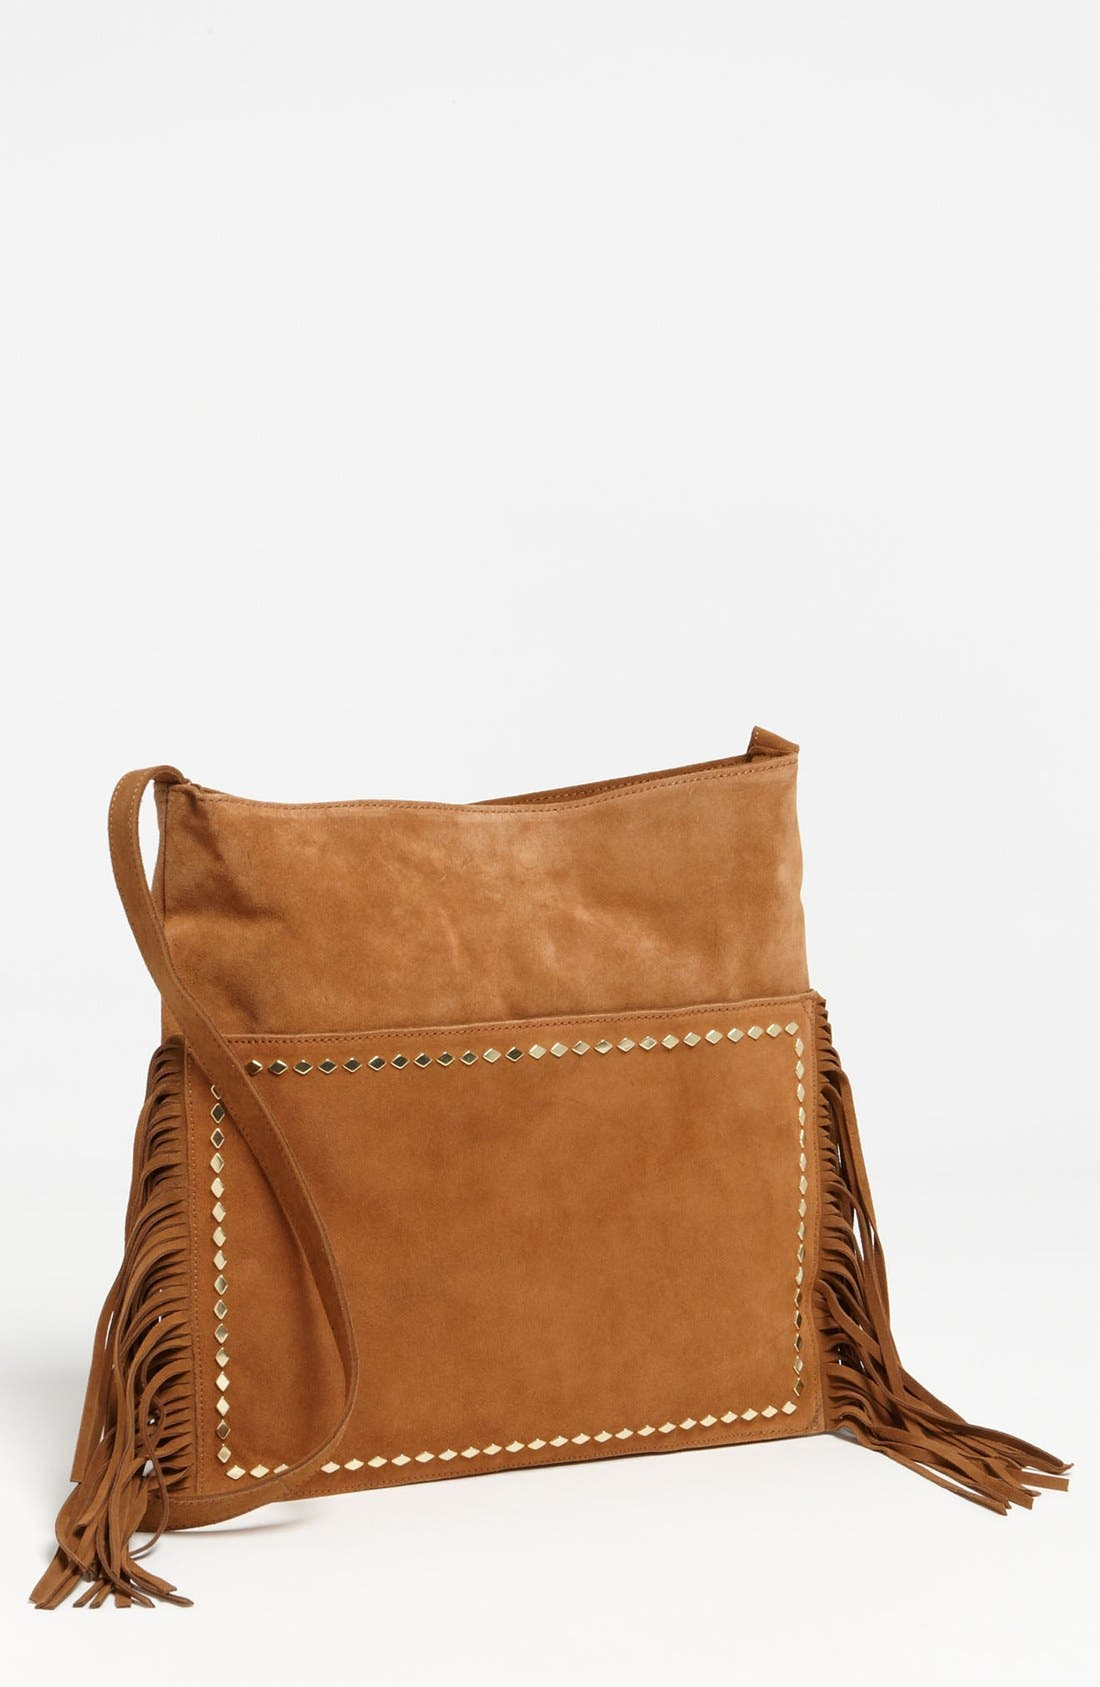 Alternate Image 1 Selected - Steve Madden Fringed Suede Crossbody Bag